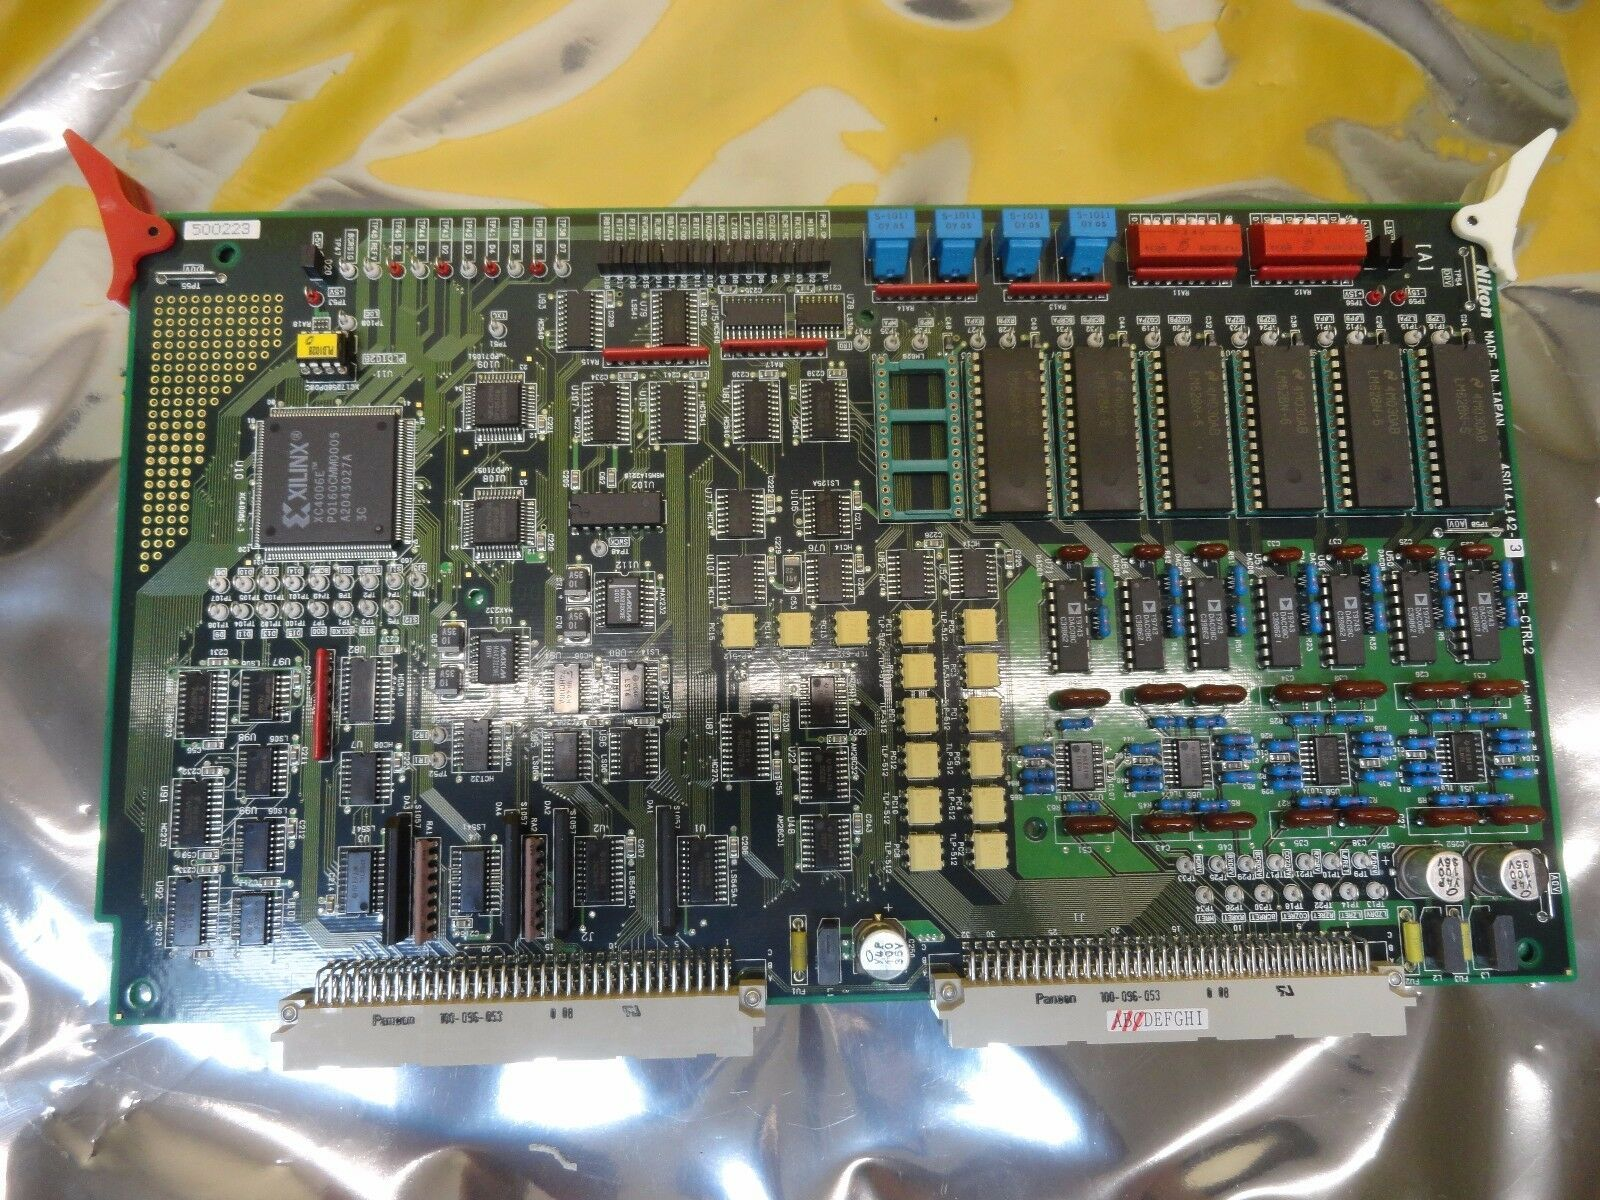 Nikon 4S014-142-3 Control Board PCB RL-CTRL2 NSR-S204B Step-and-Repeat Used